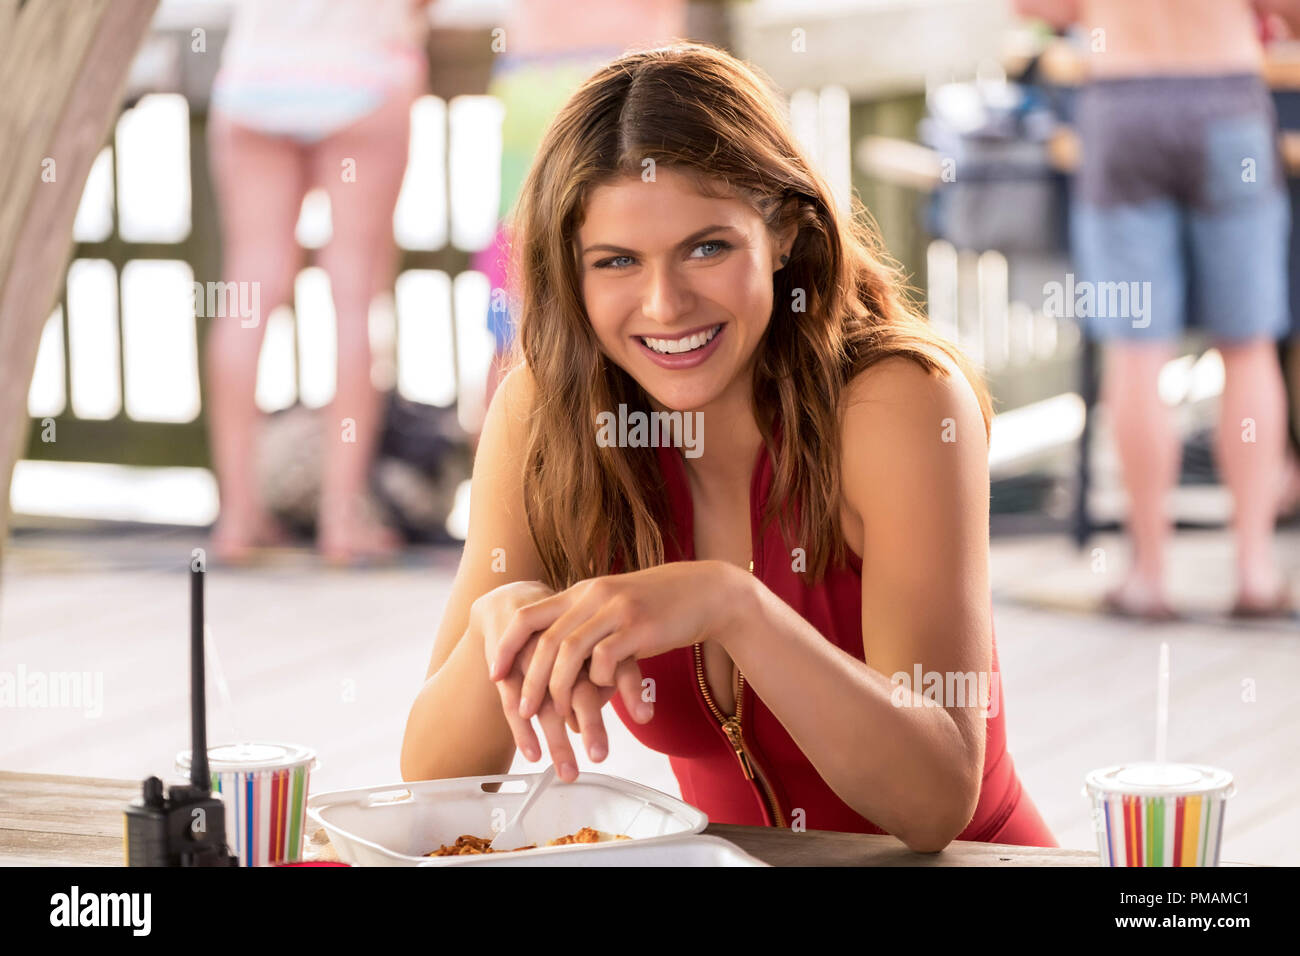 Baywatch 2017 Still High Resolution Stock Photography And Images Alamy